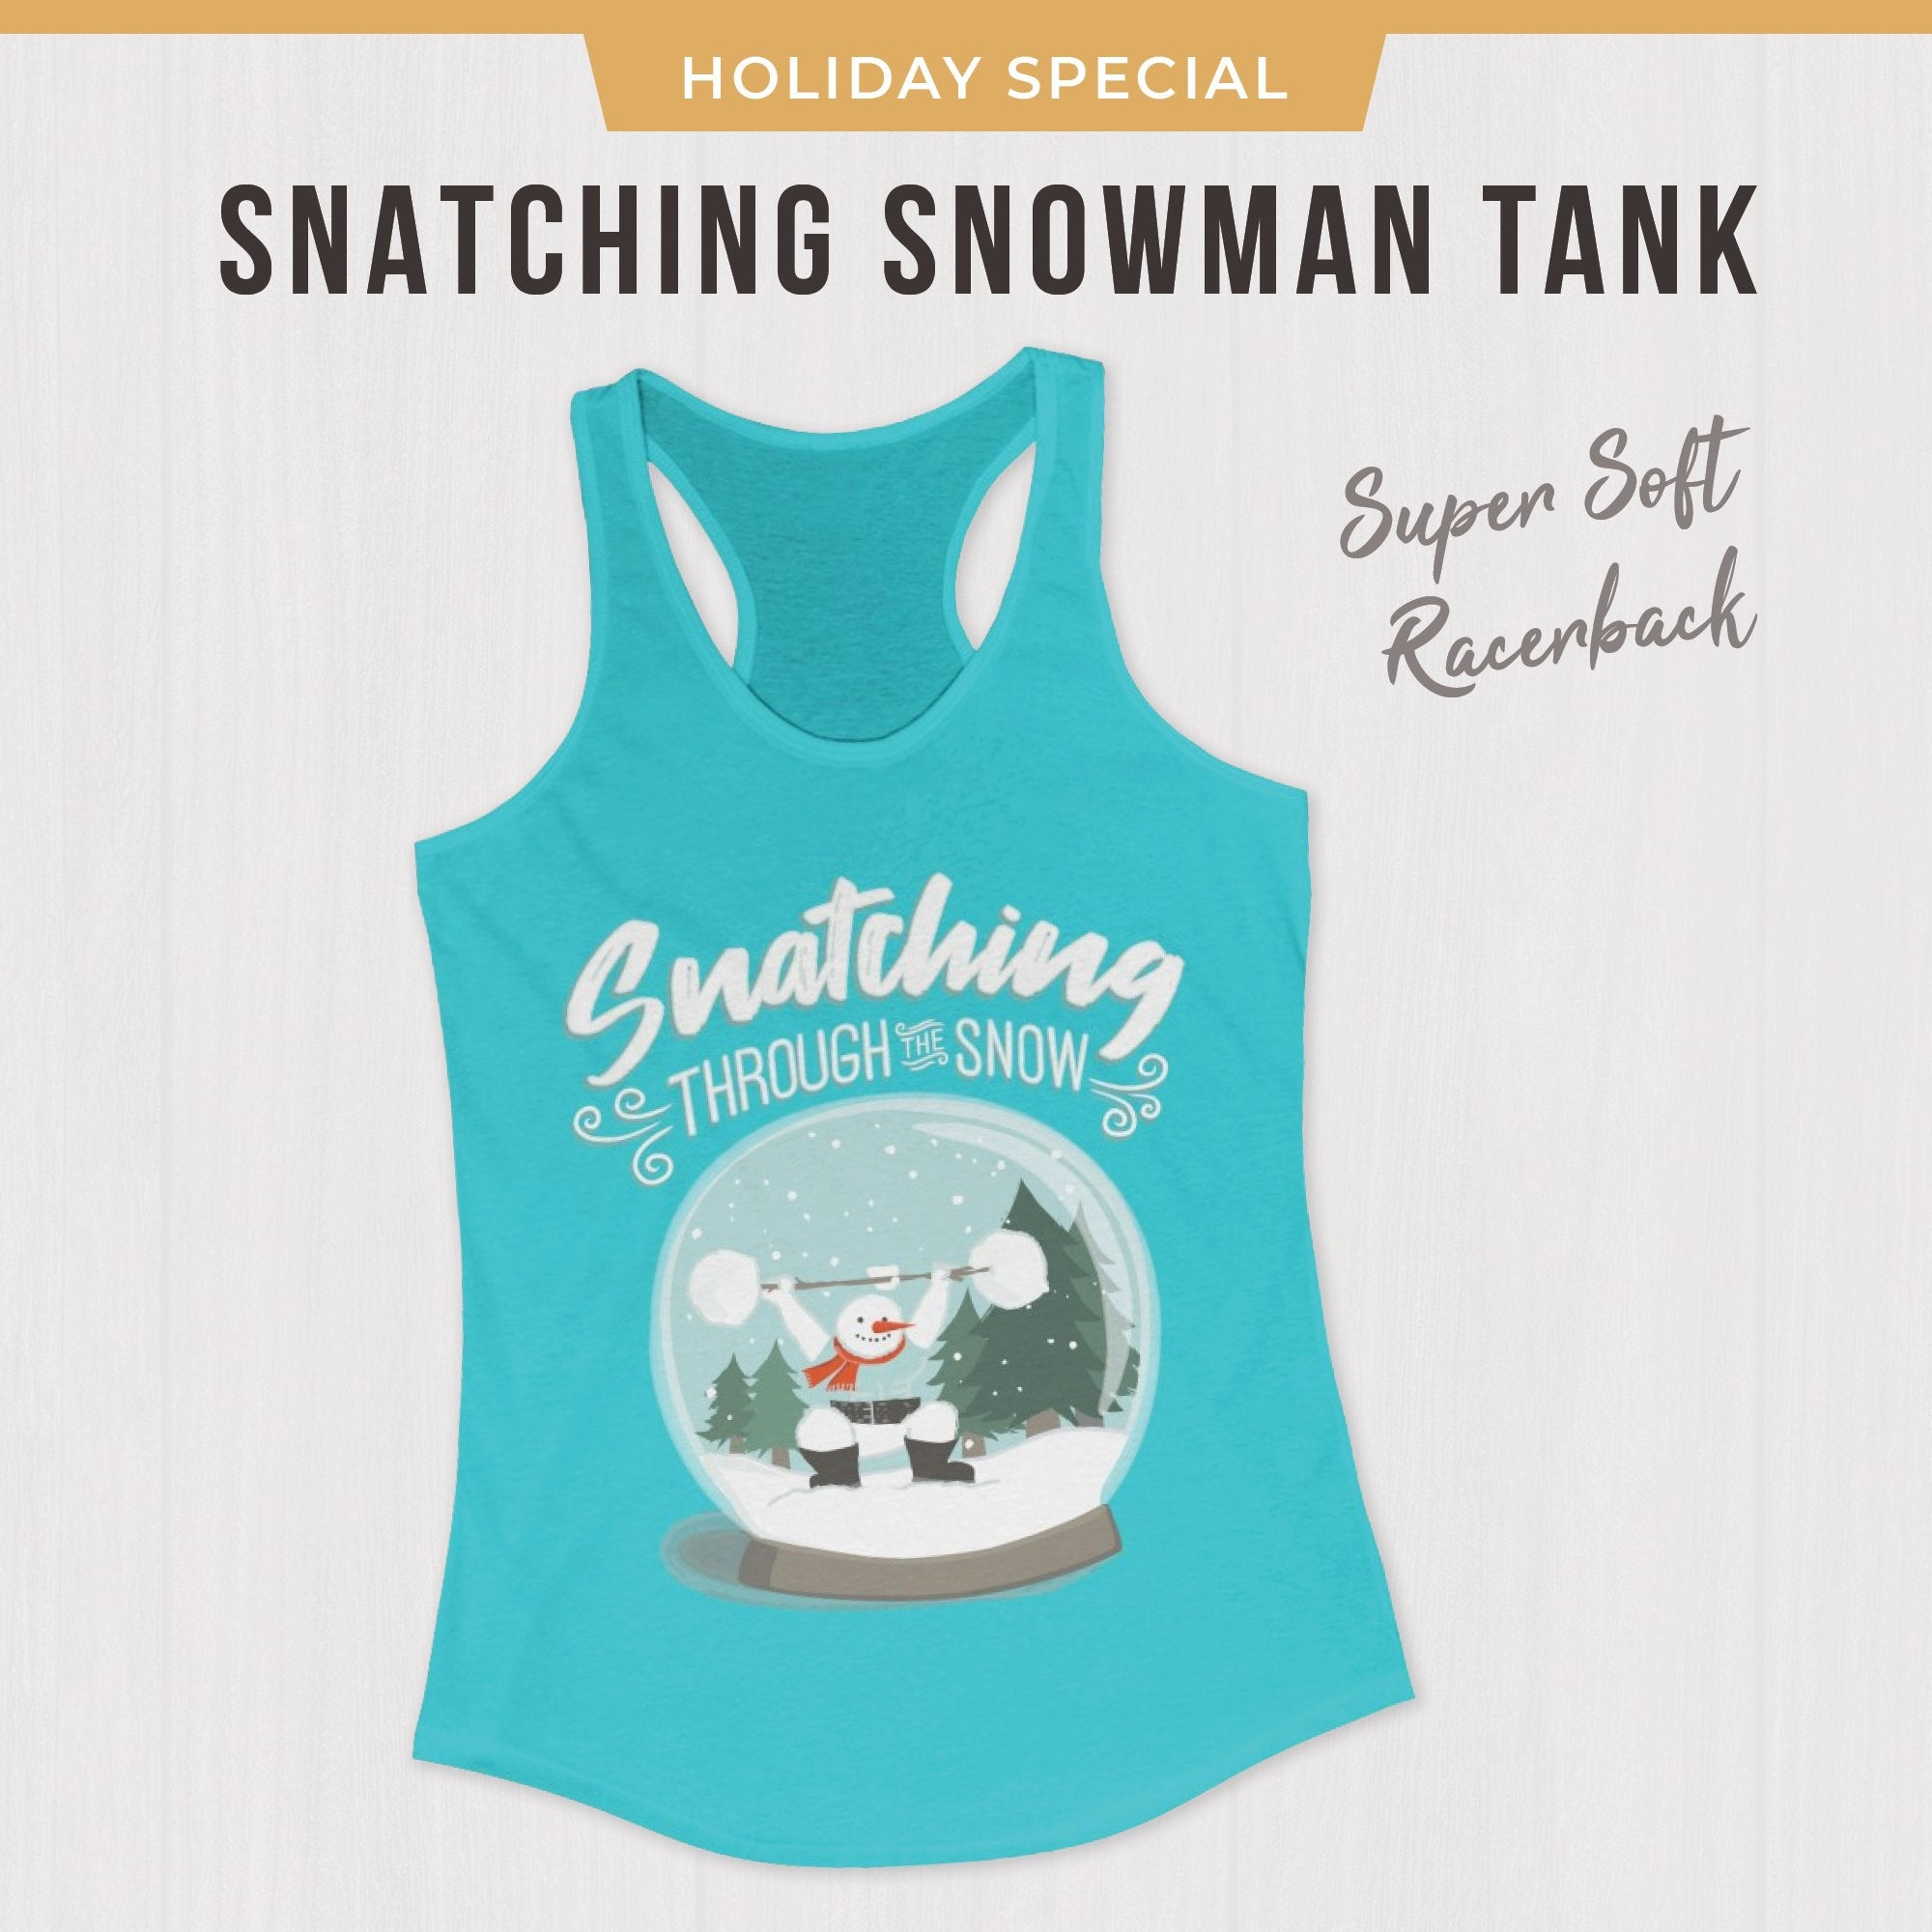 Snatching Christmas CrossFit weightlifting tank top Holiday Fitness